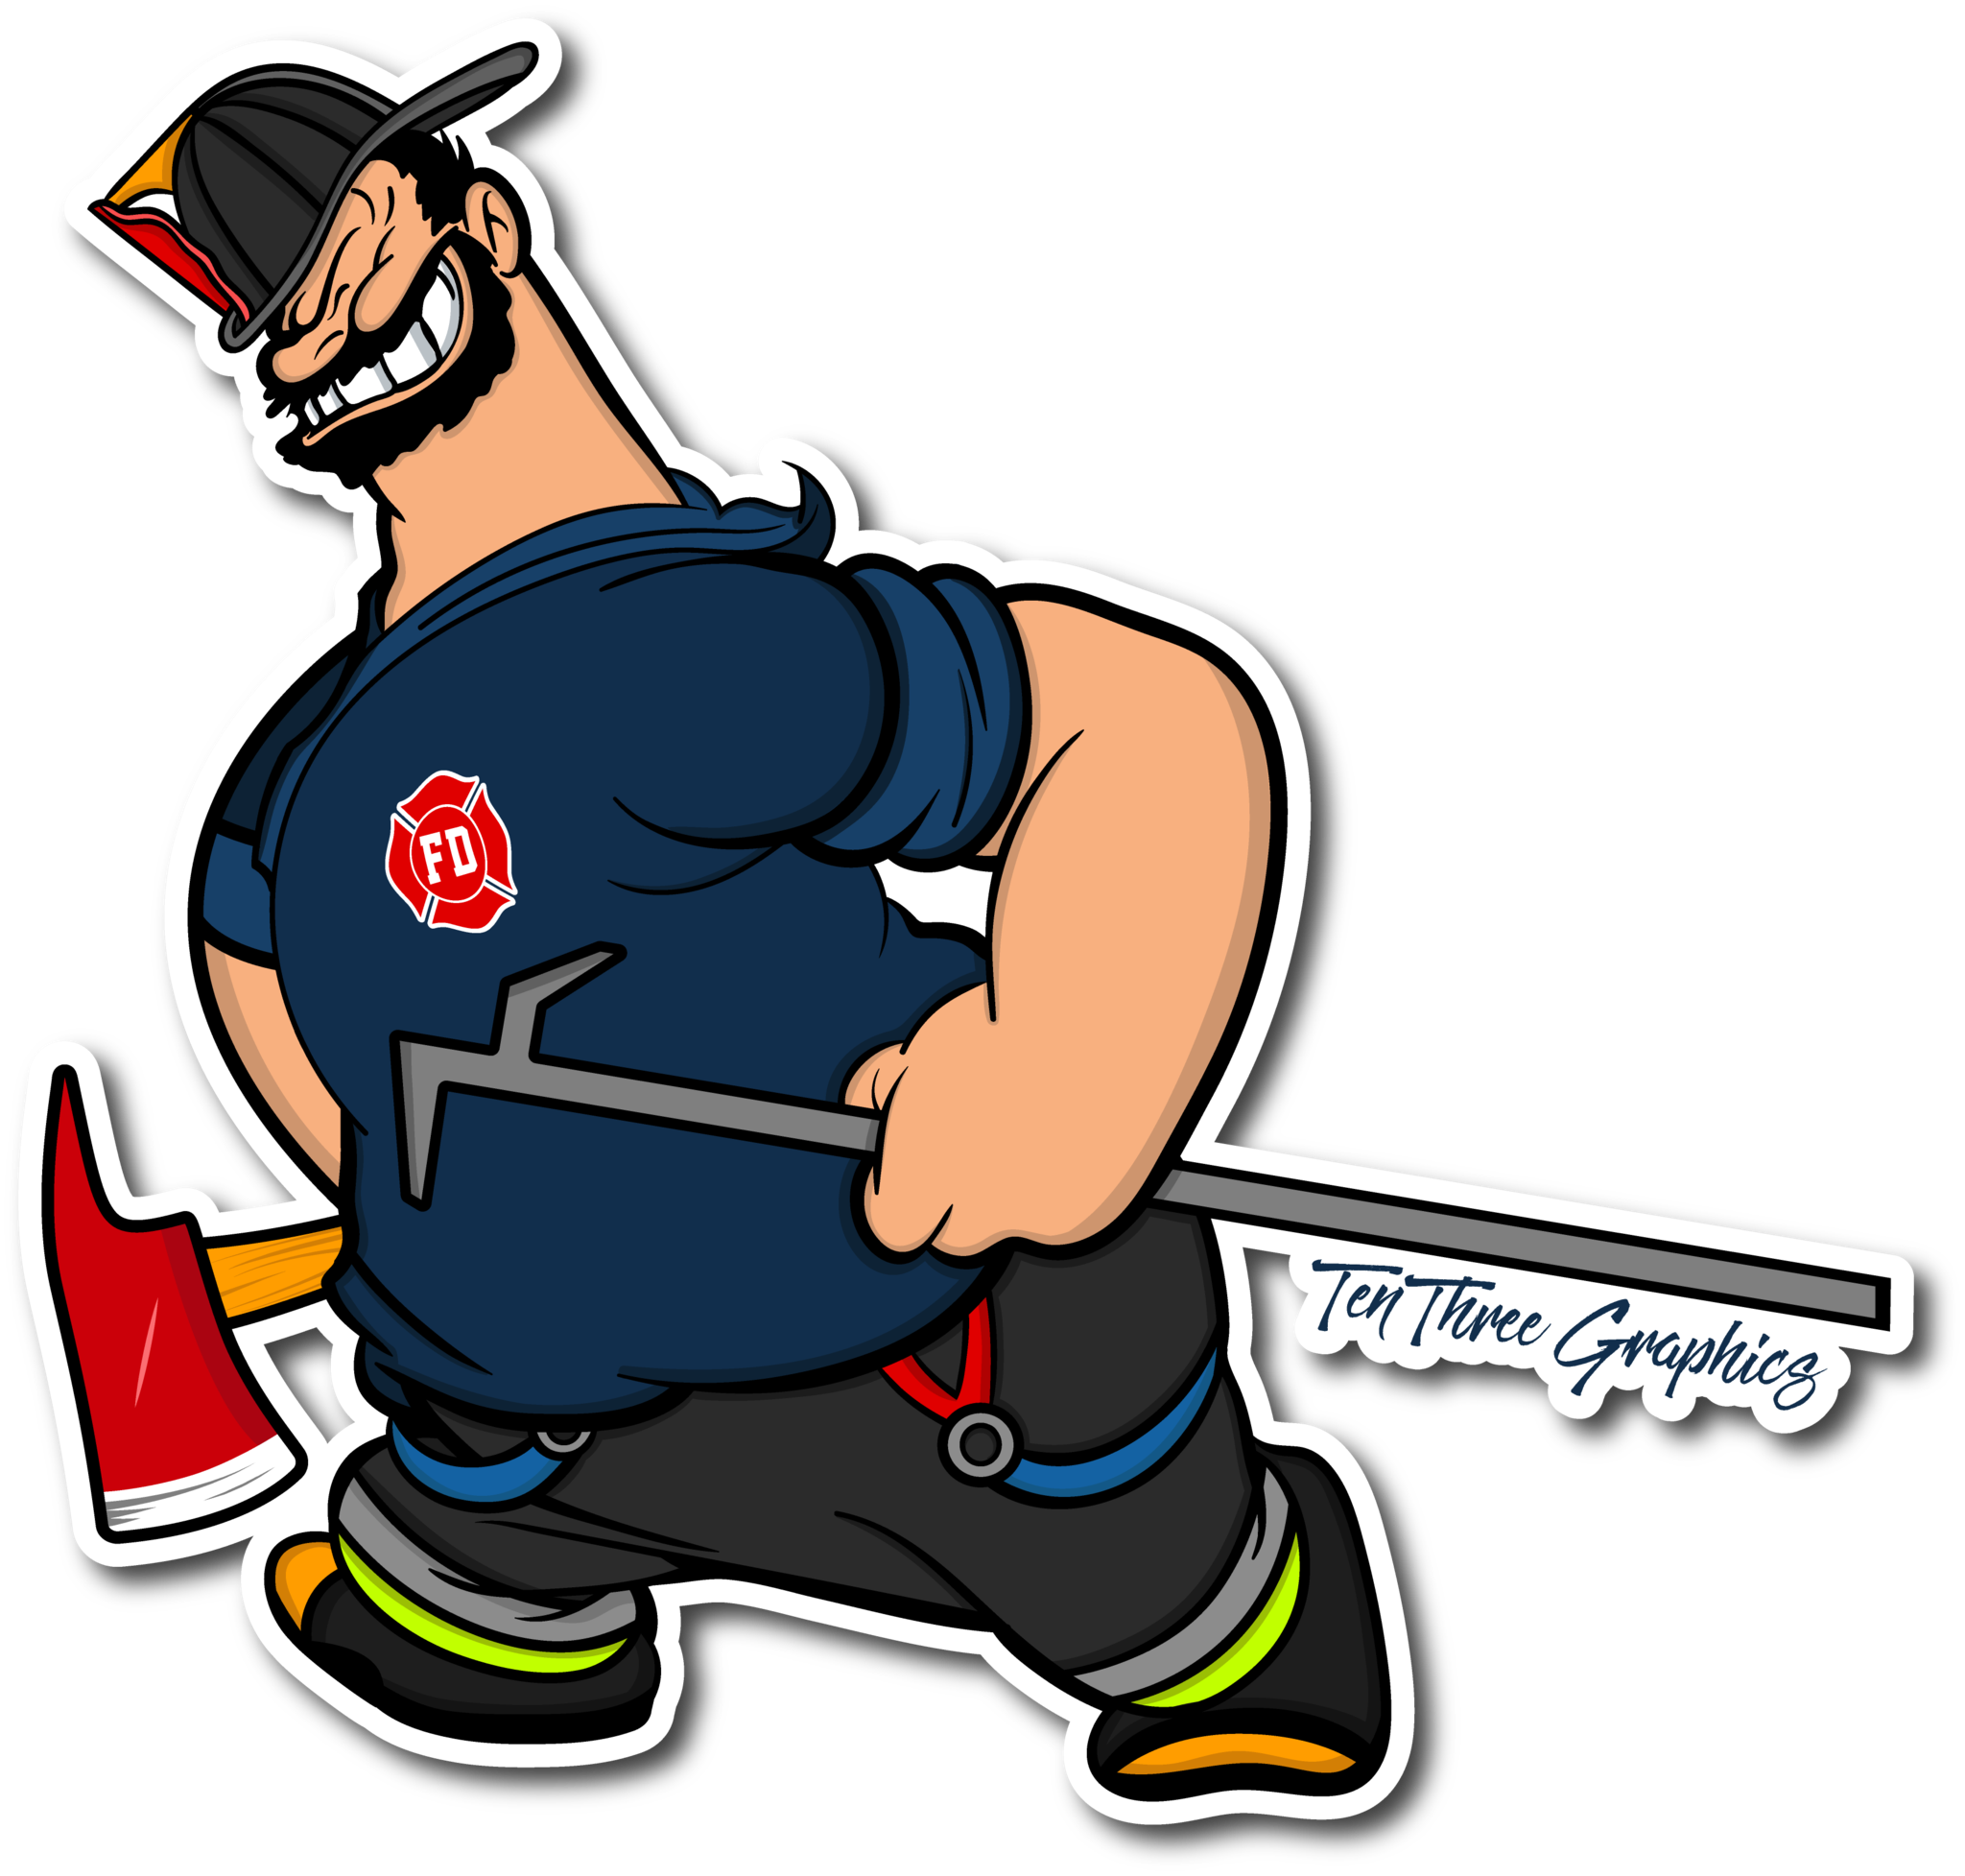 Firefighter kneeling at the cross clipart banner royalty free library Truckie Decal | Pinterest | Firefighter, Firefighting and Fire dept banner royalty free library